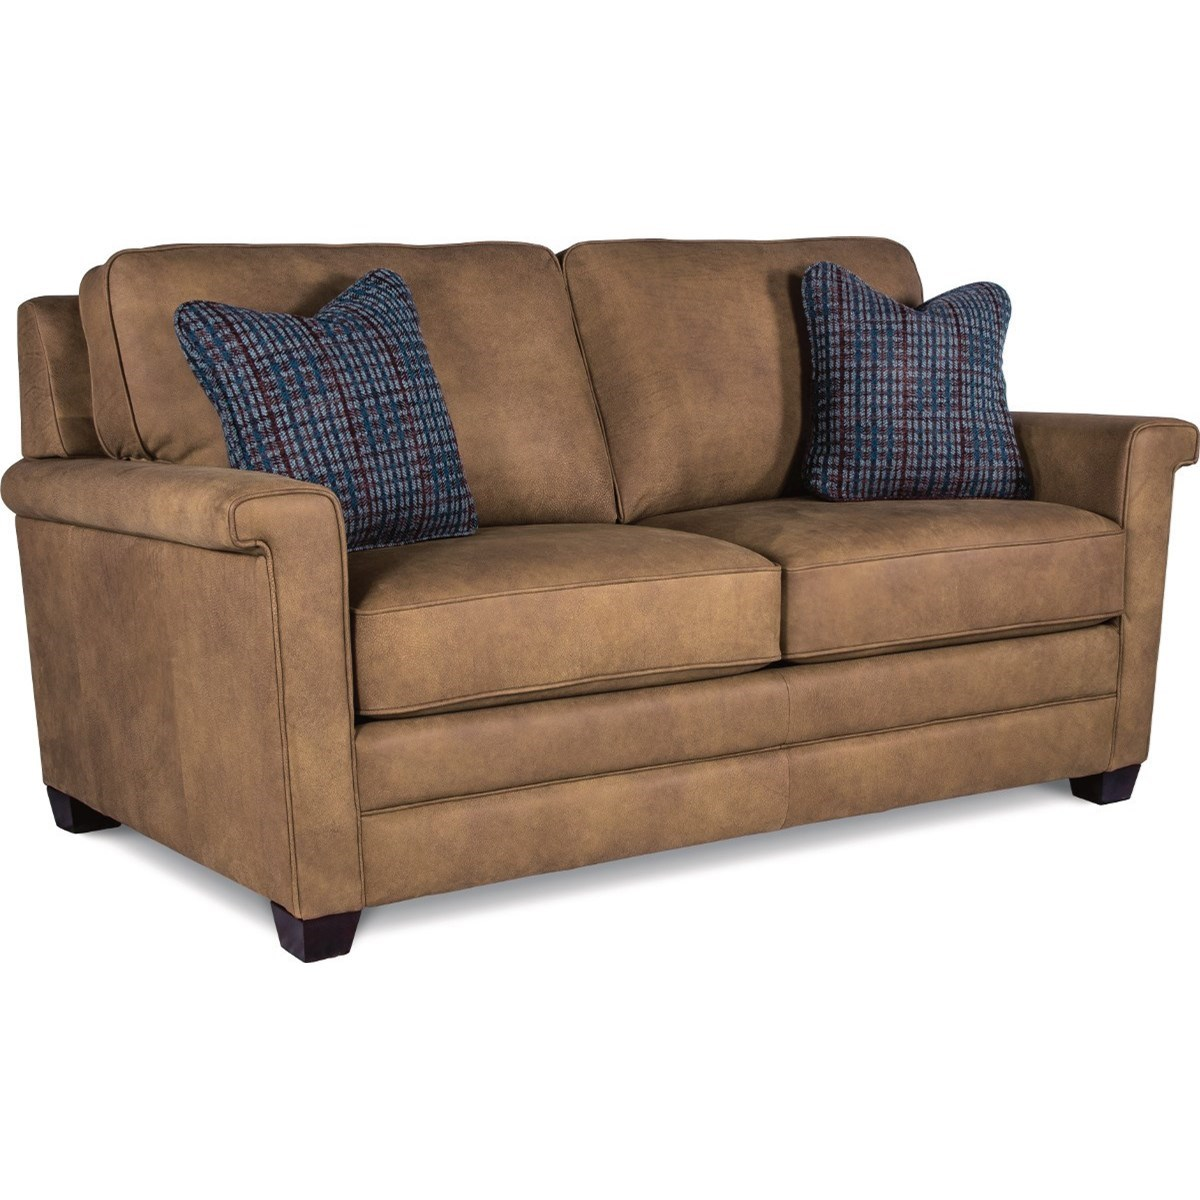 modern apartment sized furniture | La-Z-Boy Bexley Contemporary Apartment Size Sofa | Lindy's ...